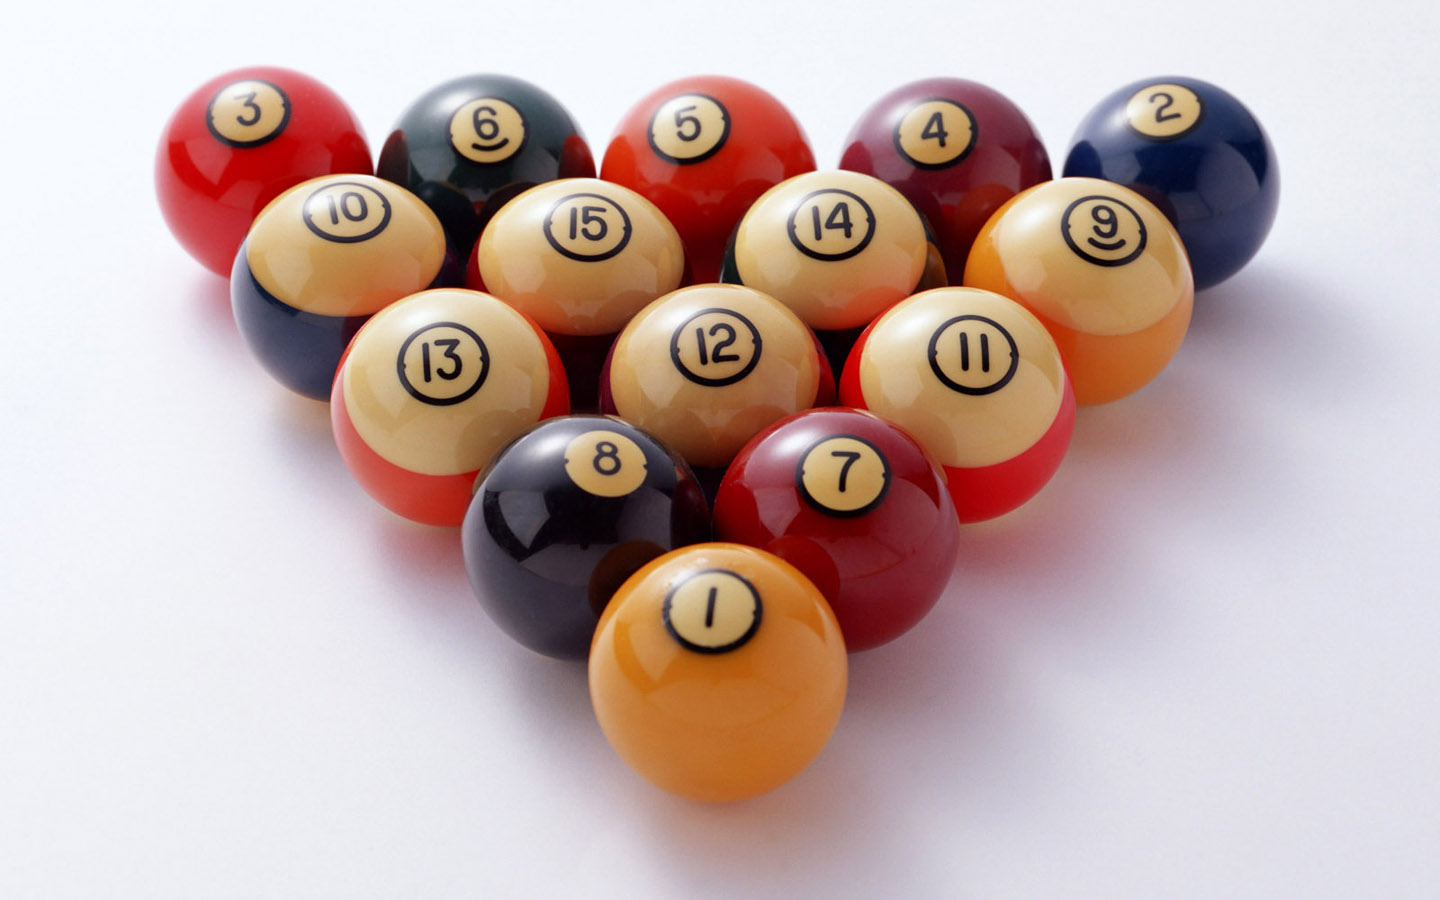 Billiards Balls in a Triangle 762 Kb